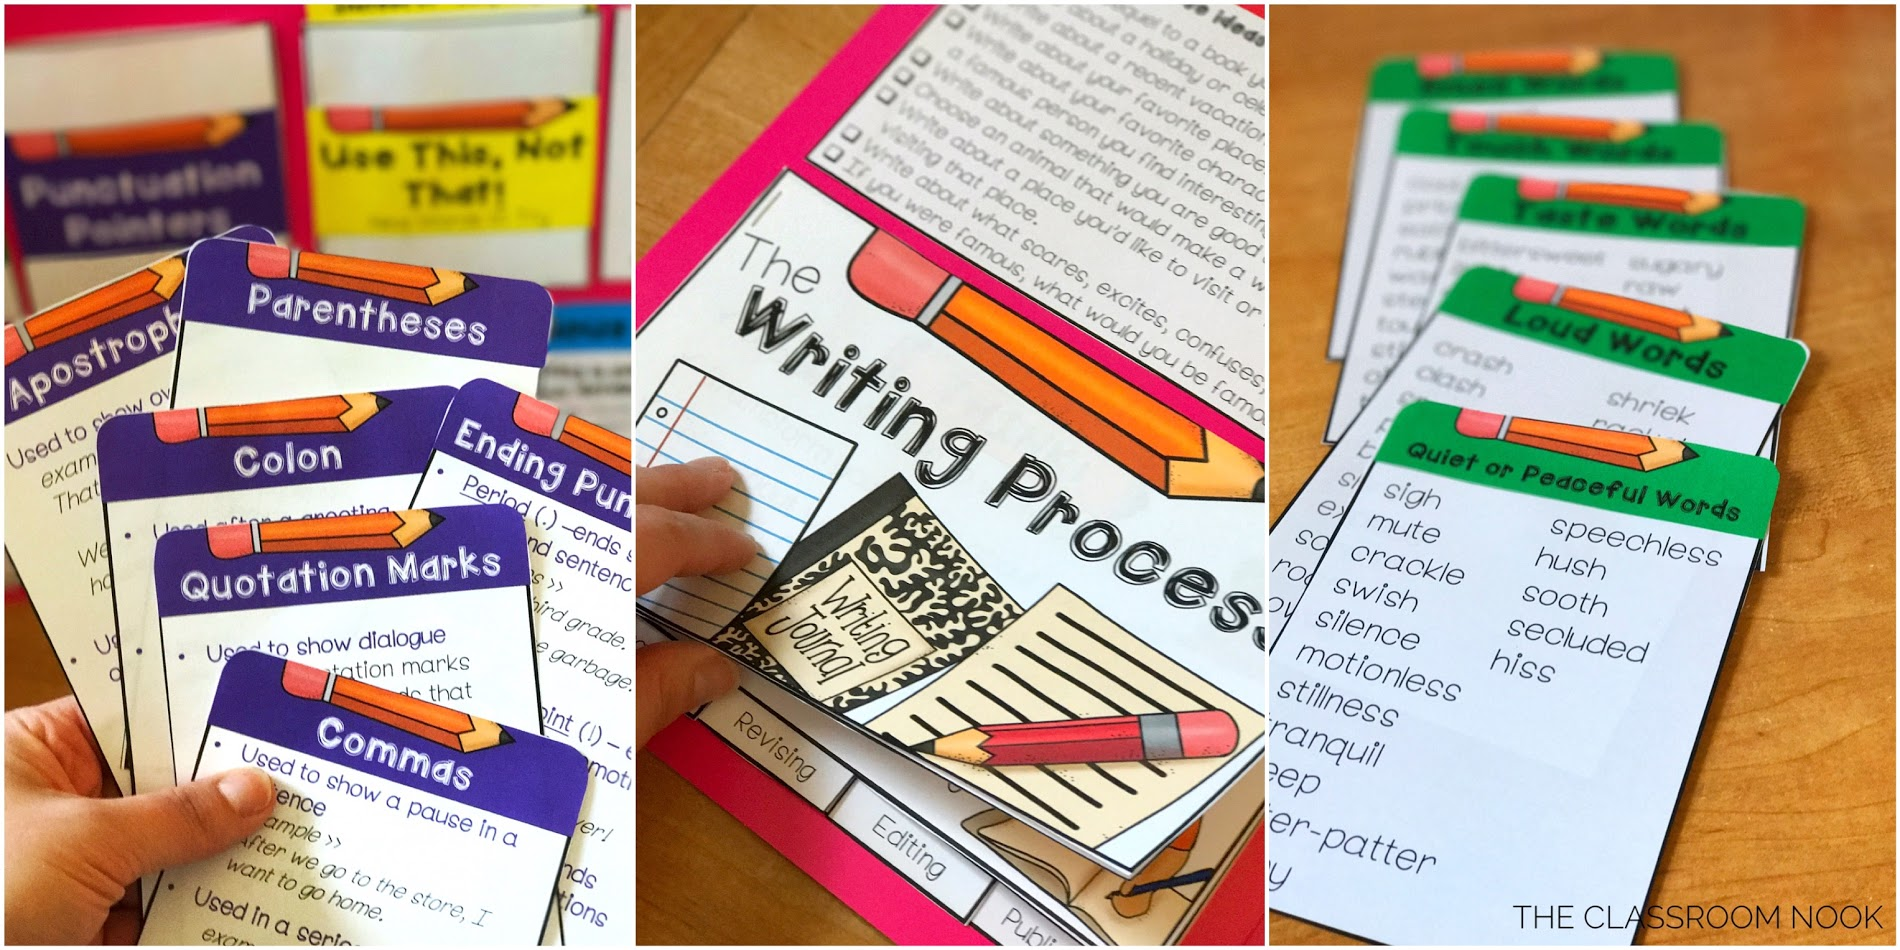 Place all of the writing resources inside the file folder toolkit once it is assembled